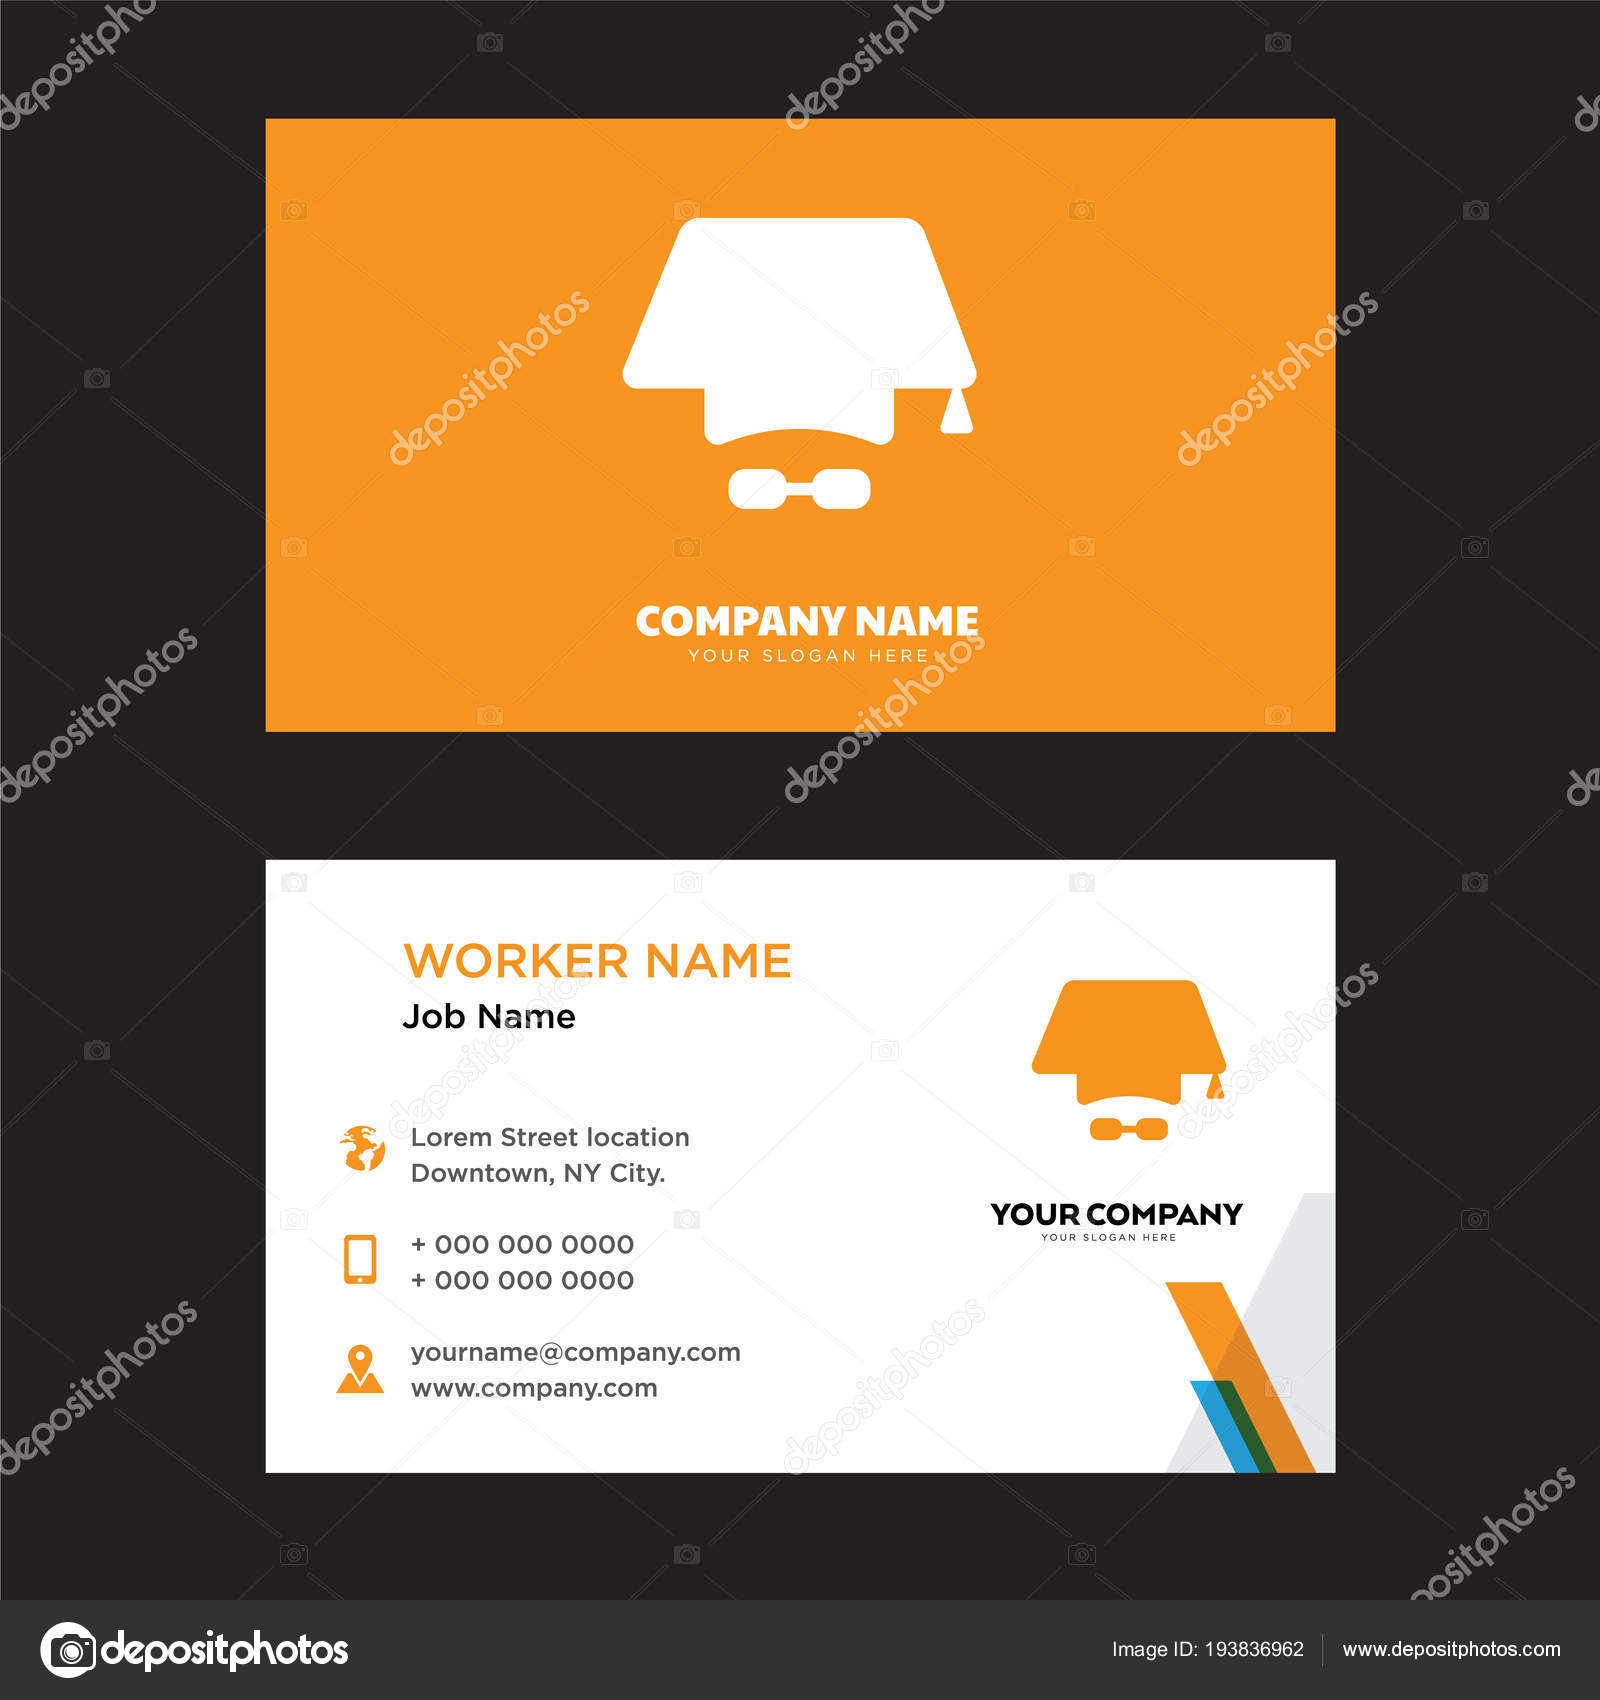 mortarboard business card design stock vector vector best 193836962